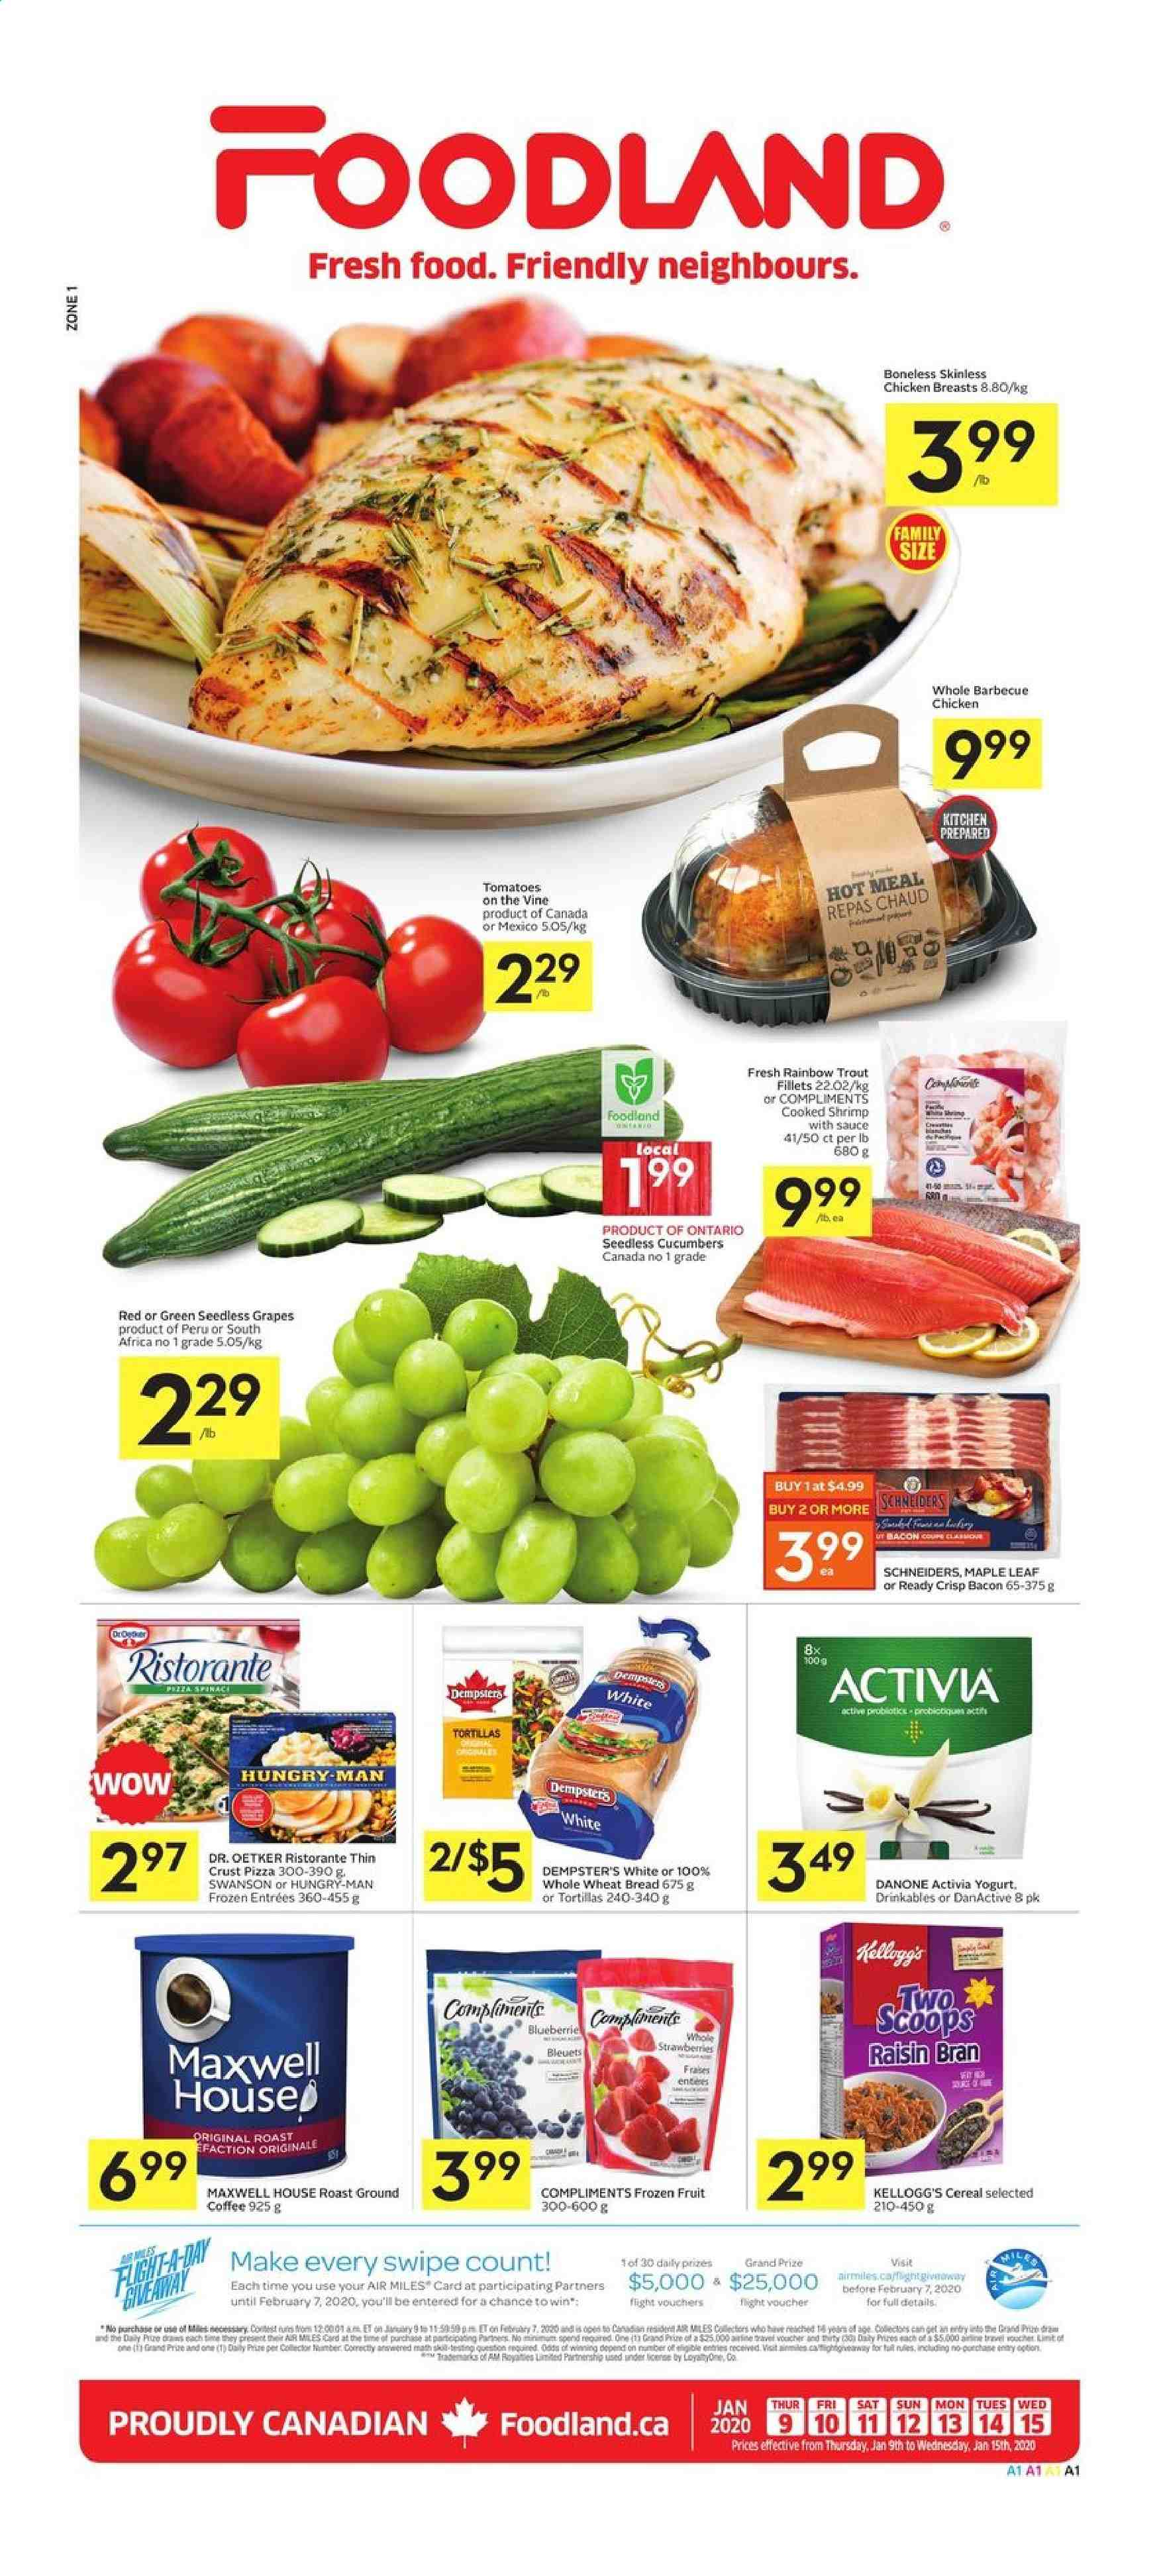 Foodland Flyer  - January 09, 2020 - January 15, 2020. Page 1.